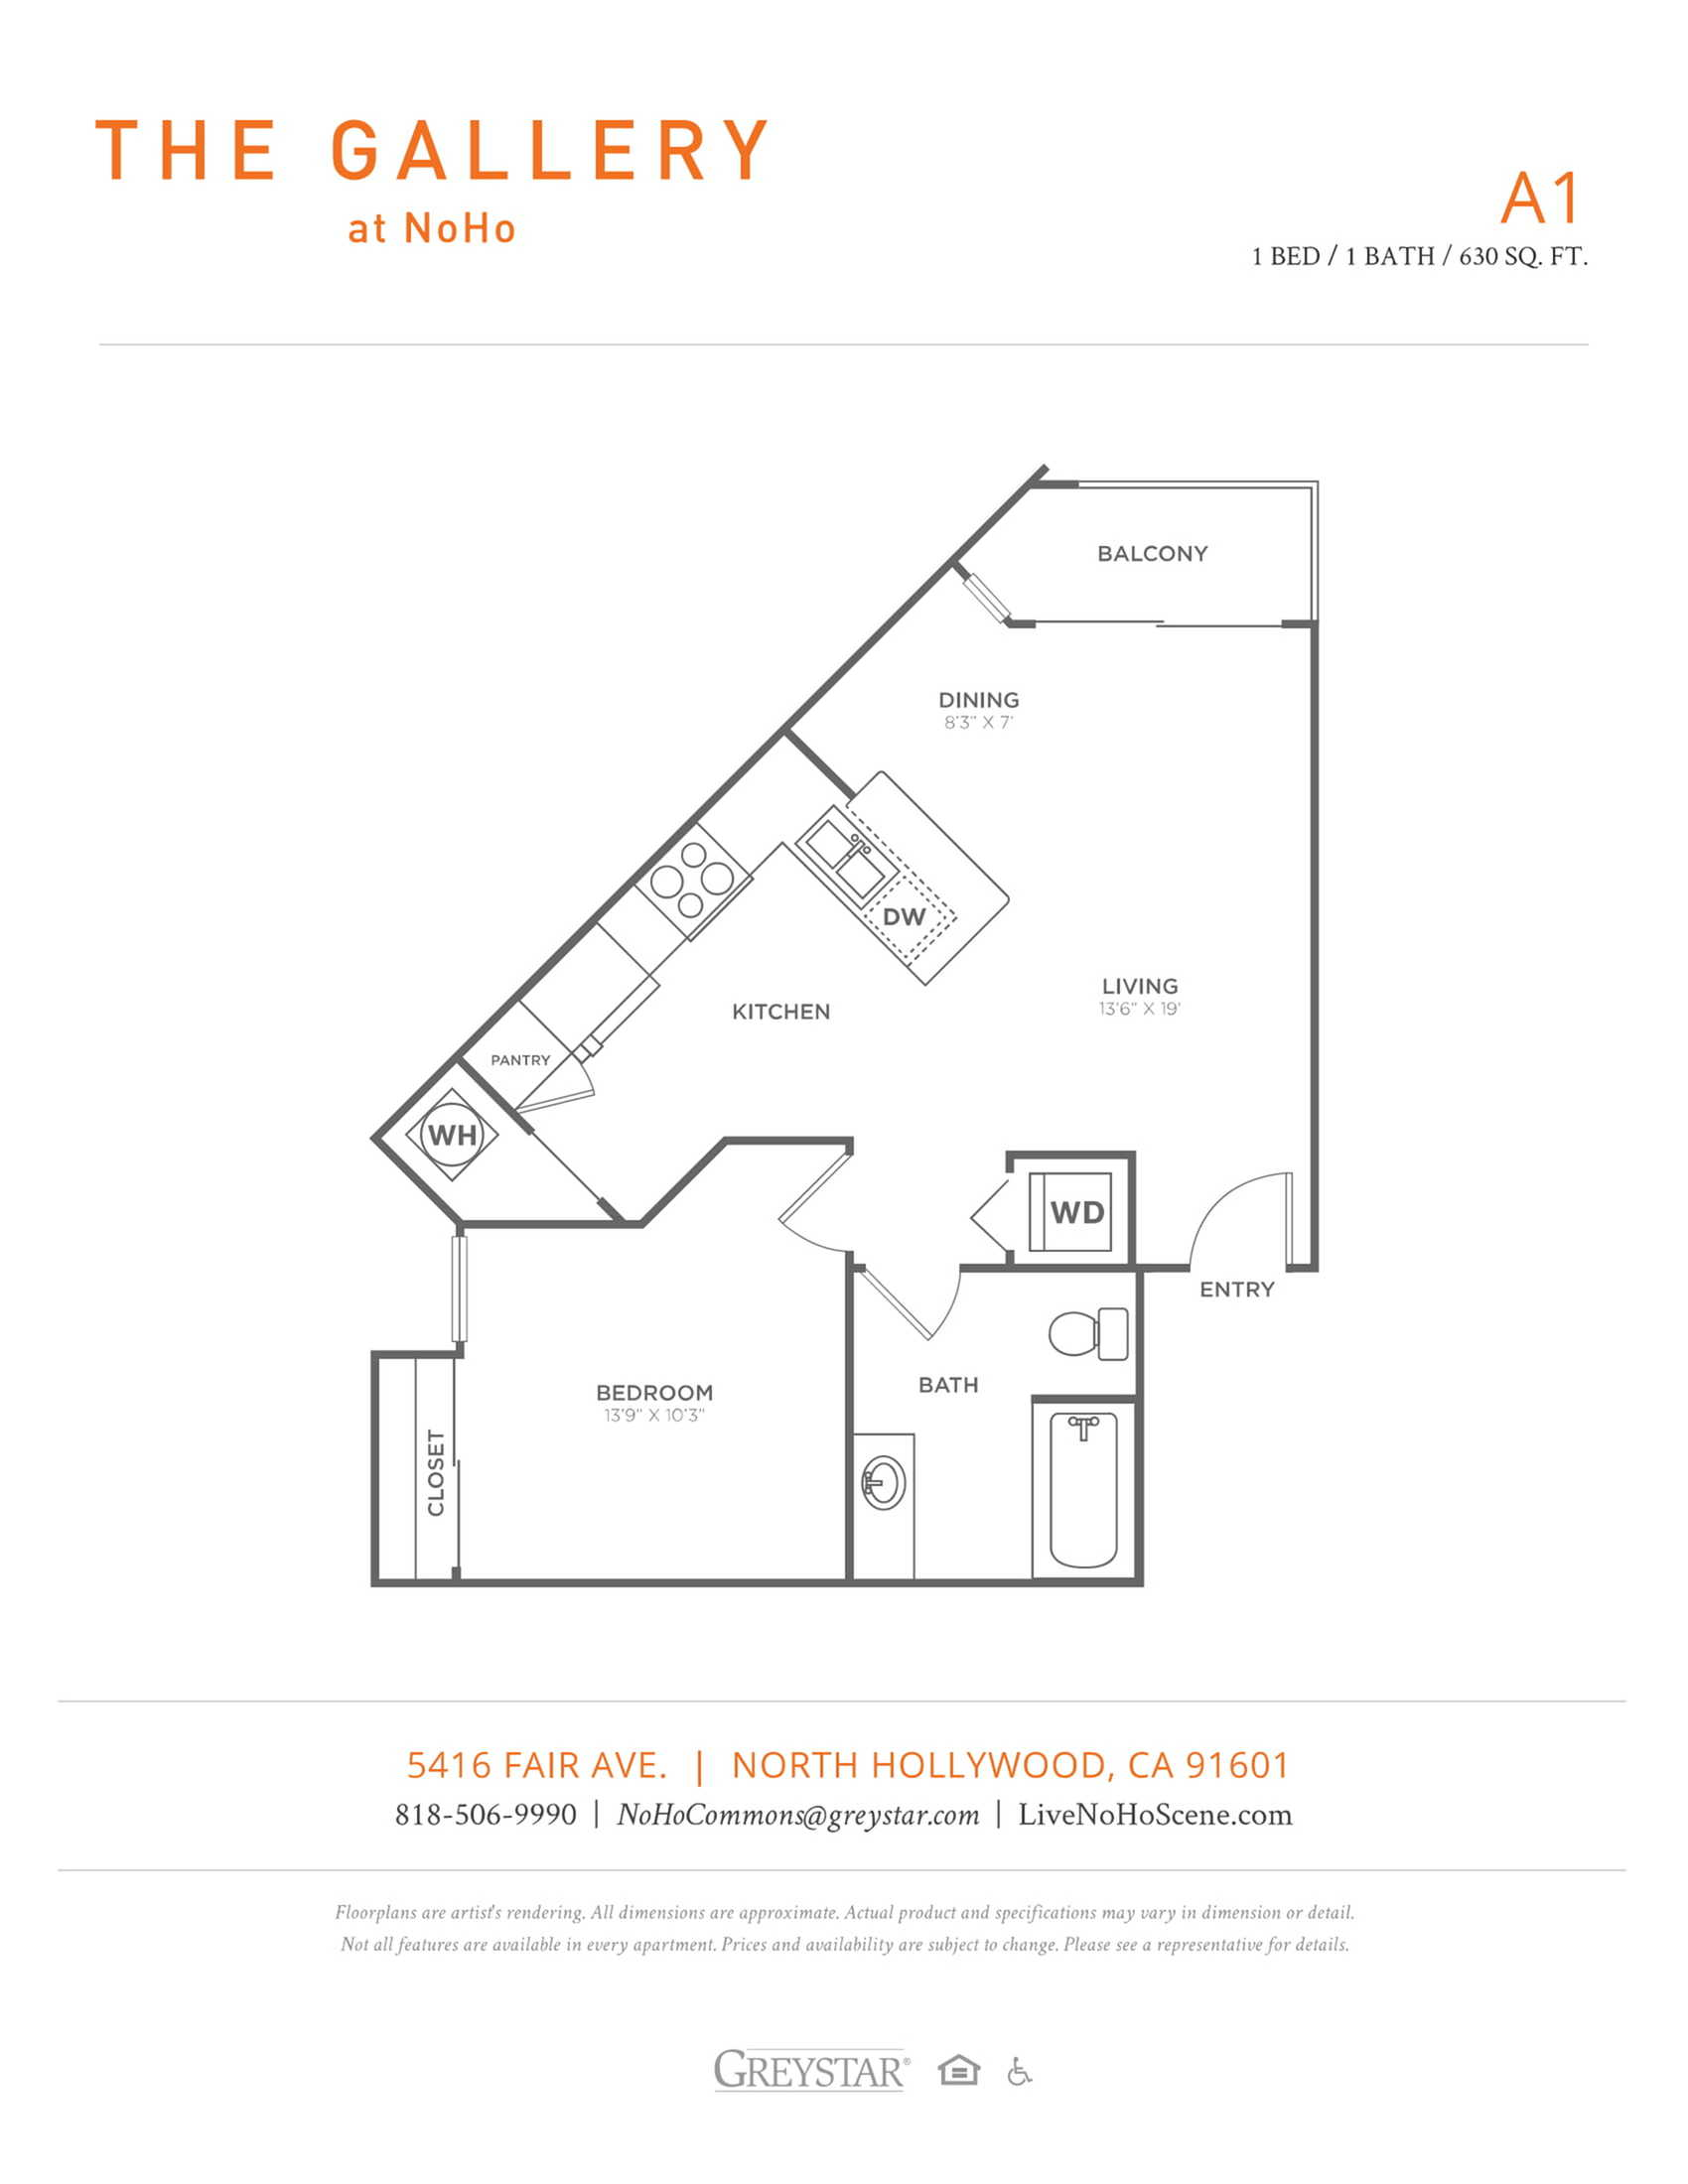 A1 | 1 bed 1 bath | from 630 square feet